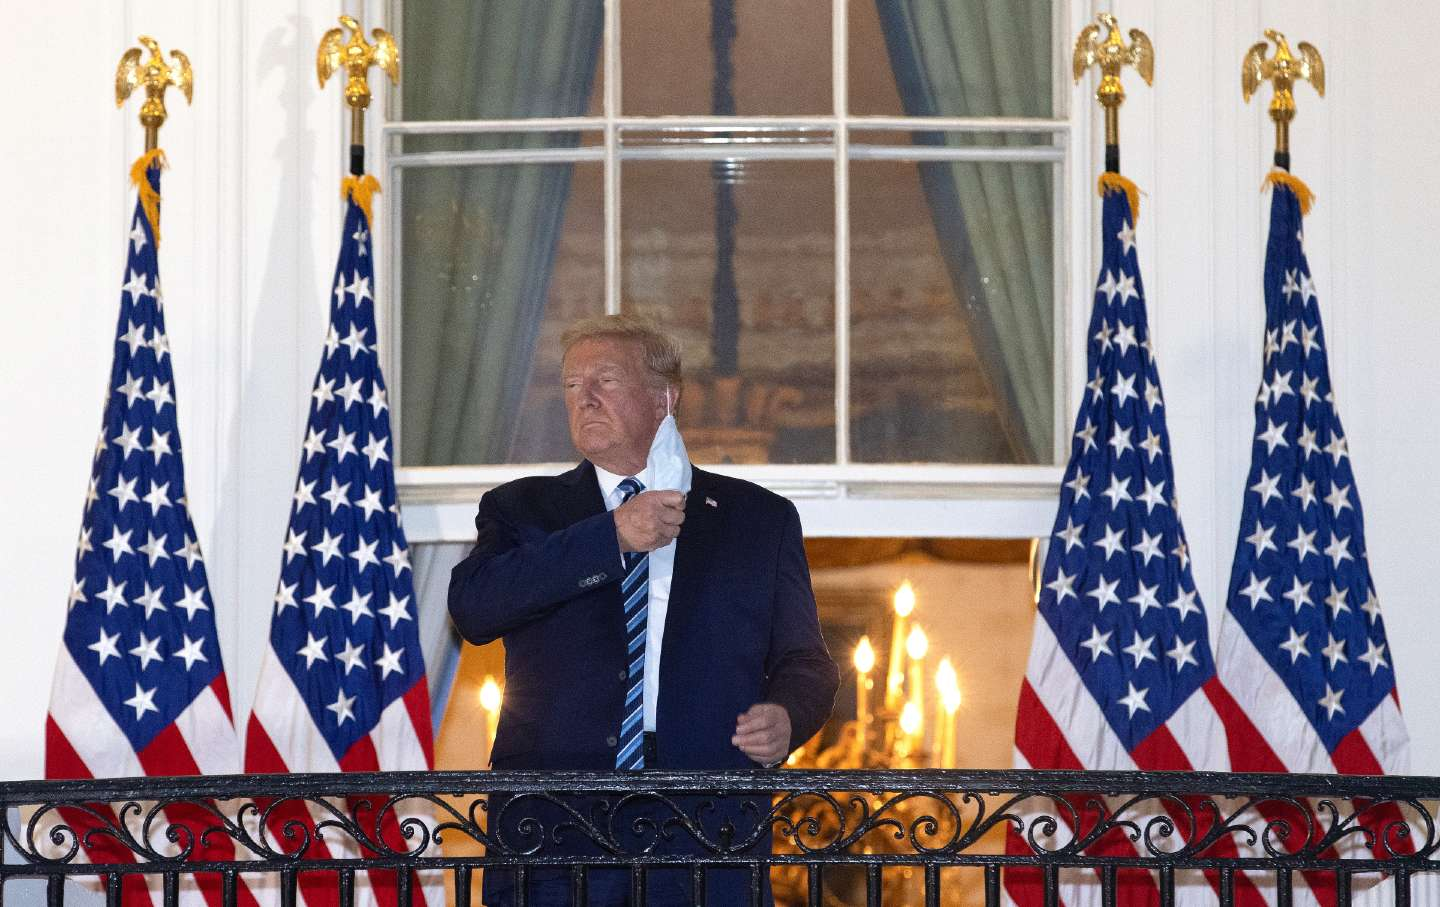 Donald Trump stands on the balcony of the White House taking off a surgical mask